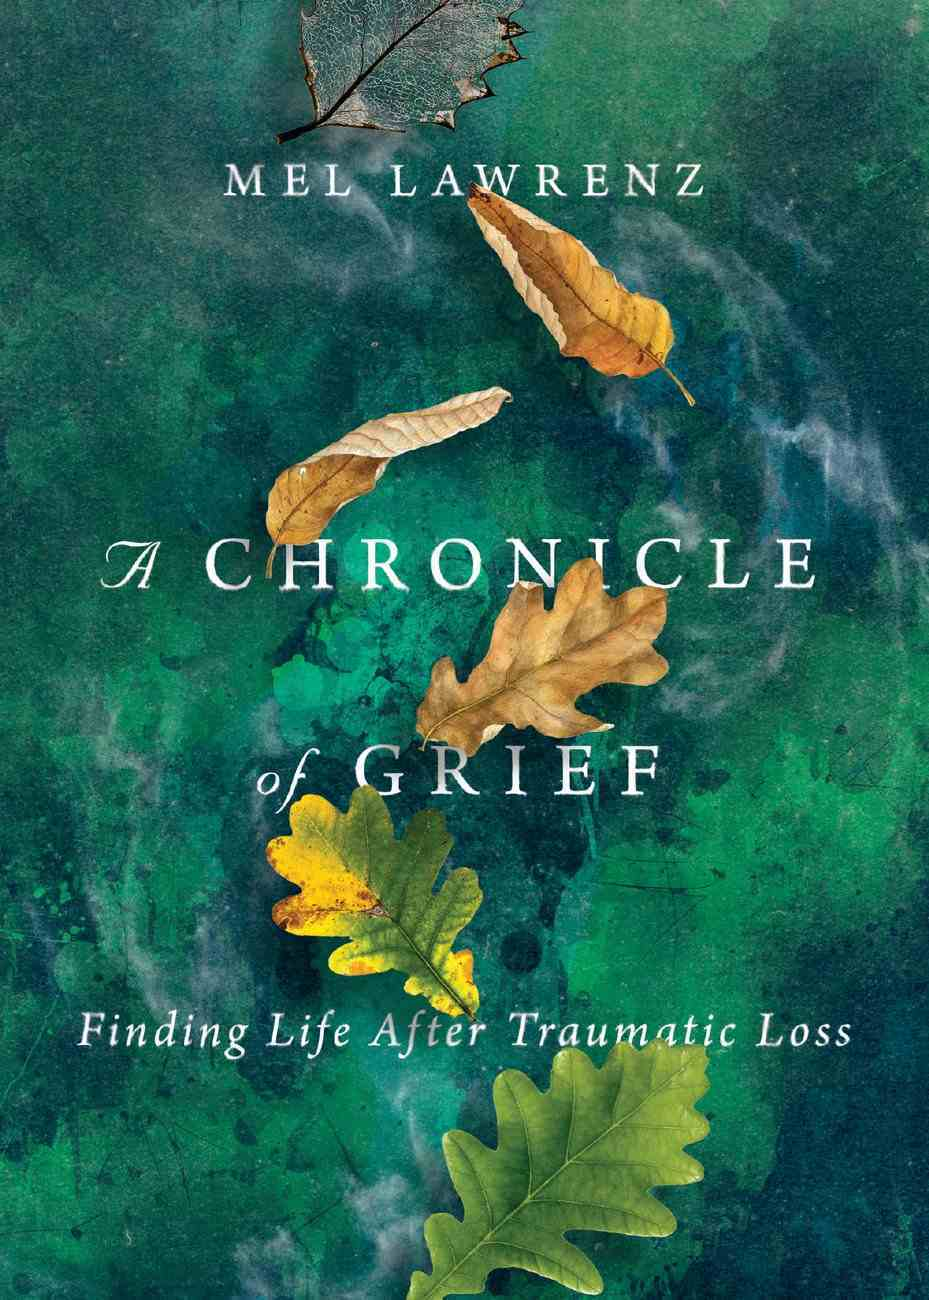 A Chronicle of Grief: Finding Life After Traumatic Loss Paperback